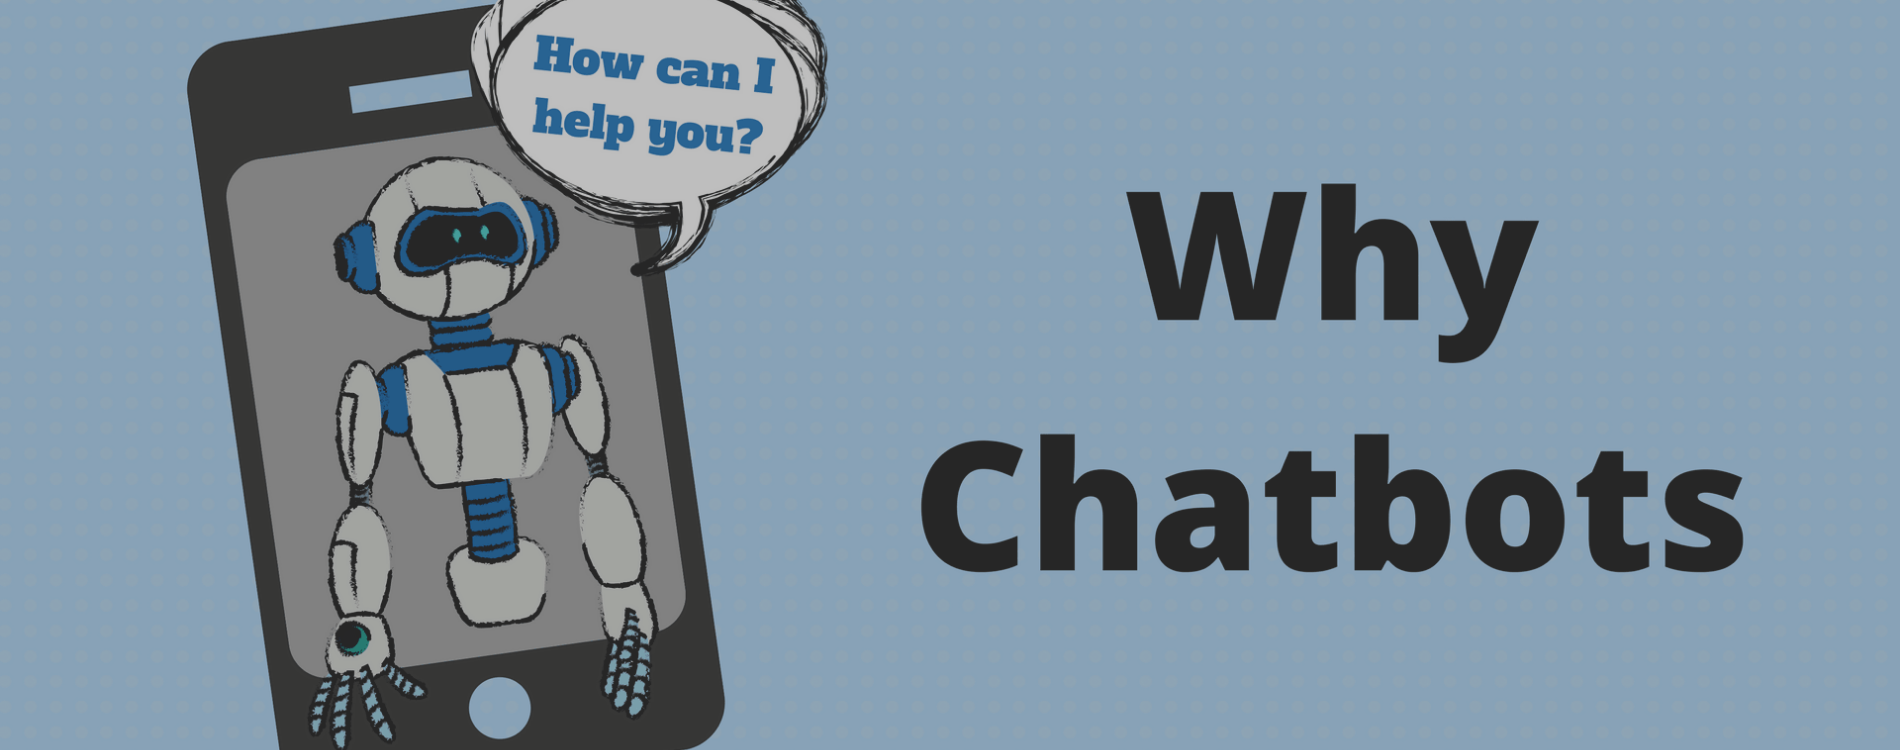 Why-Chatbots